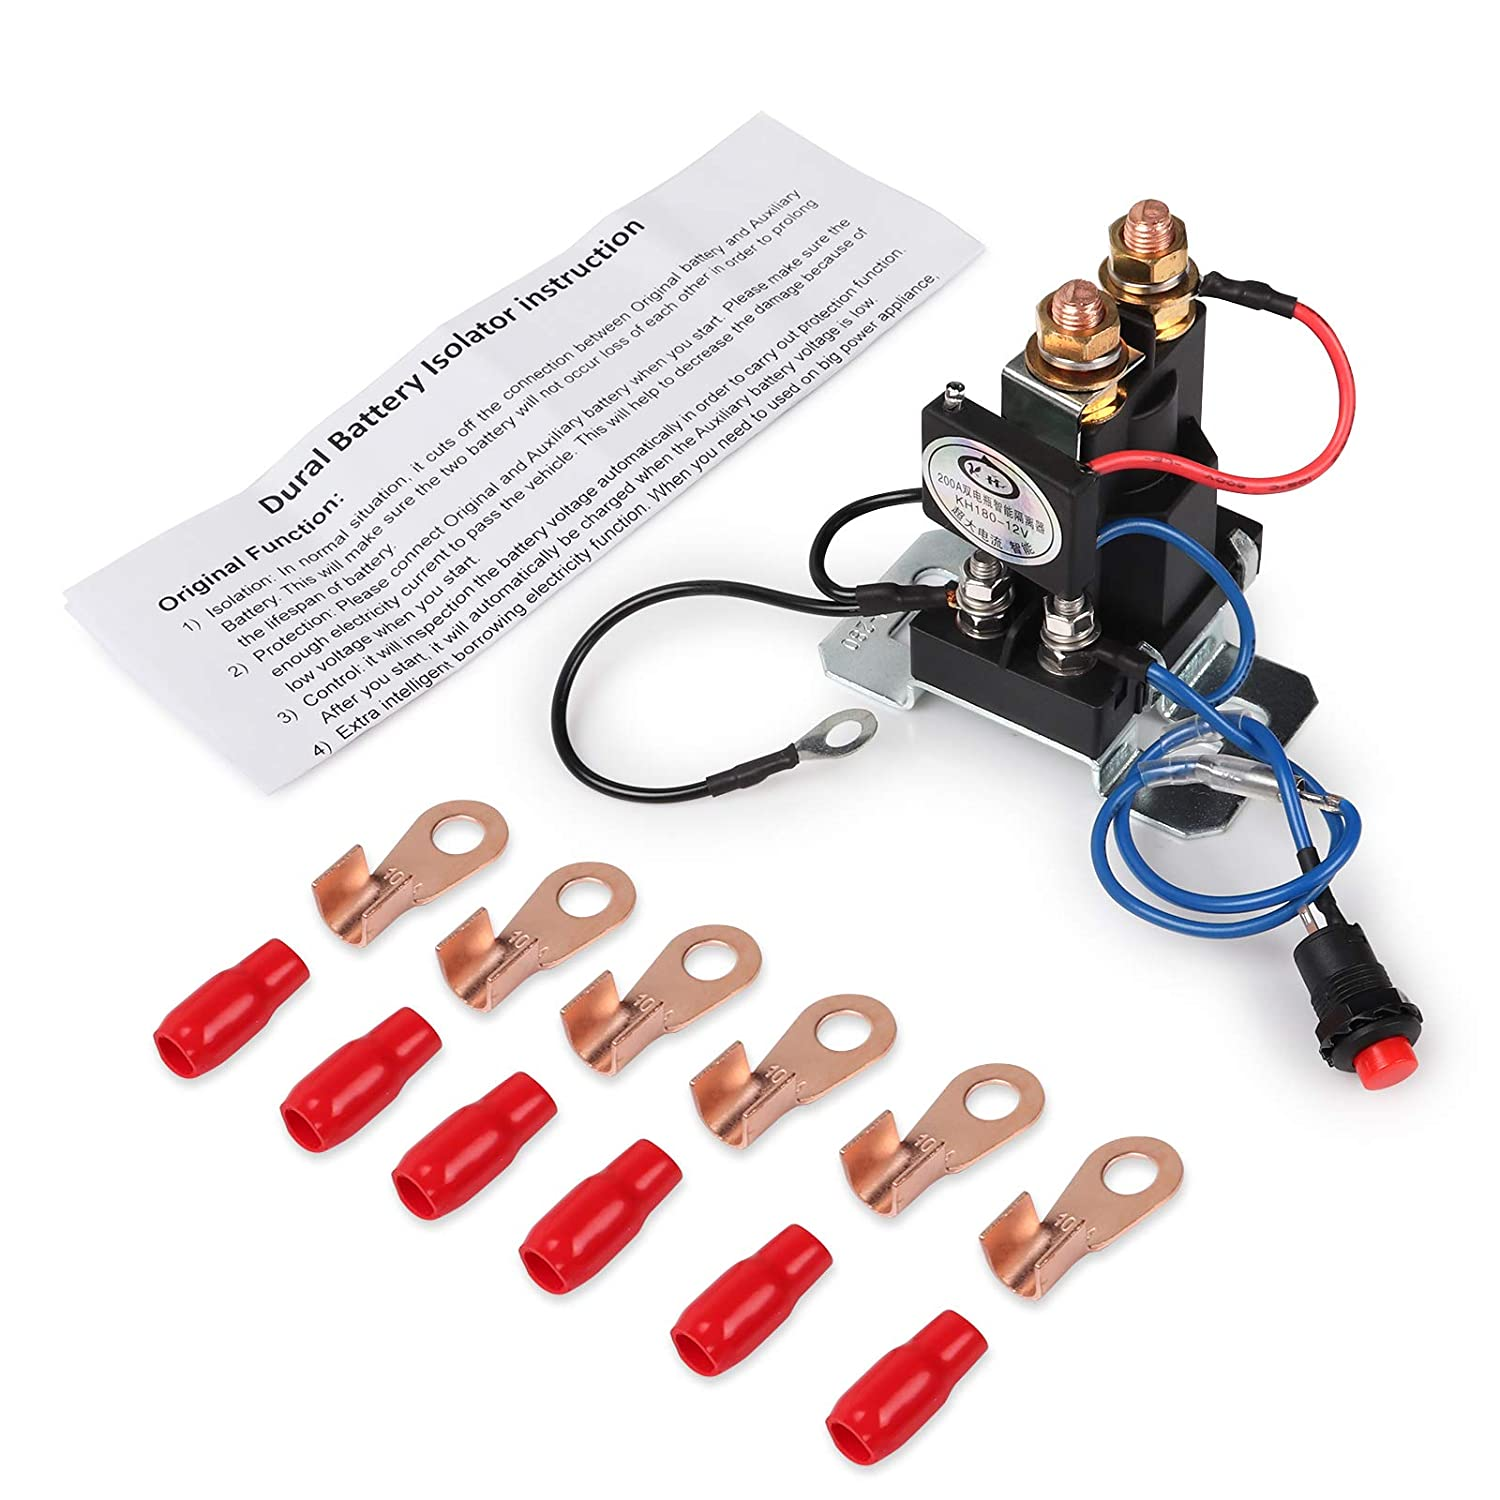 Vehicle Ehdis/® 12V 200 AMP Battery Isolator and Relay 4 Terminal Dual Battery Auto Increase Battery DC 12V-24V Suit for All Type of Cars Van Track